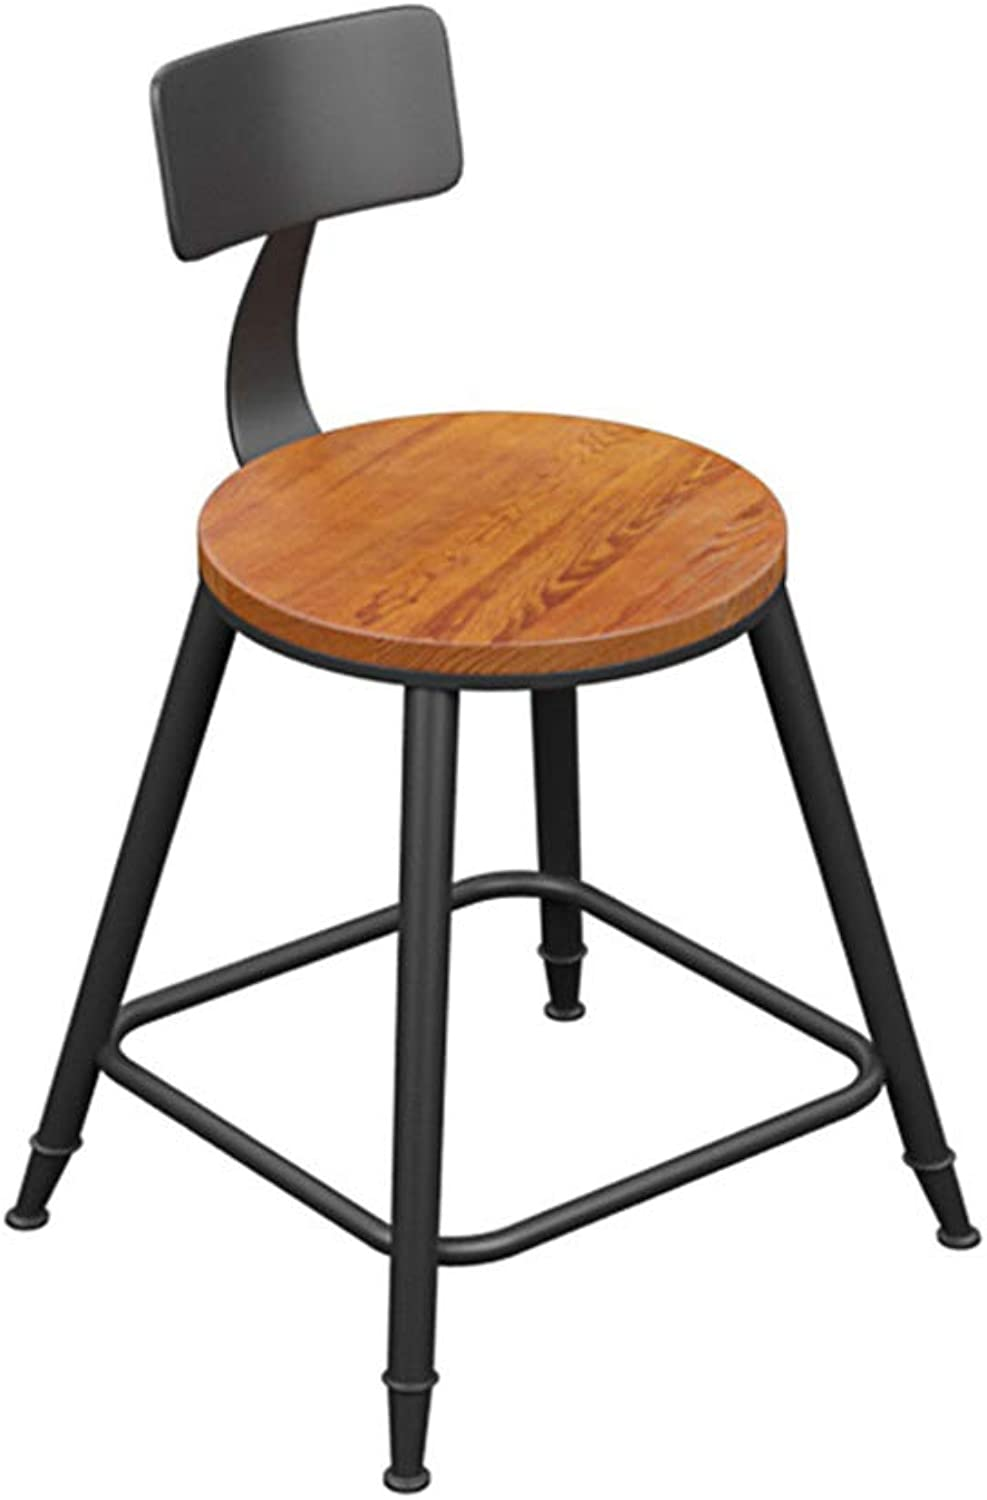 Bar Chair Retro Industrial Style High Stool Furniture Kitchen - Solid Wood PU Sponge Back (71x46x46CM) (Style    1)